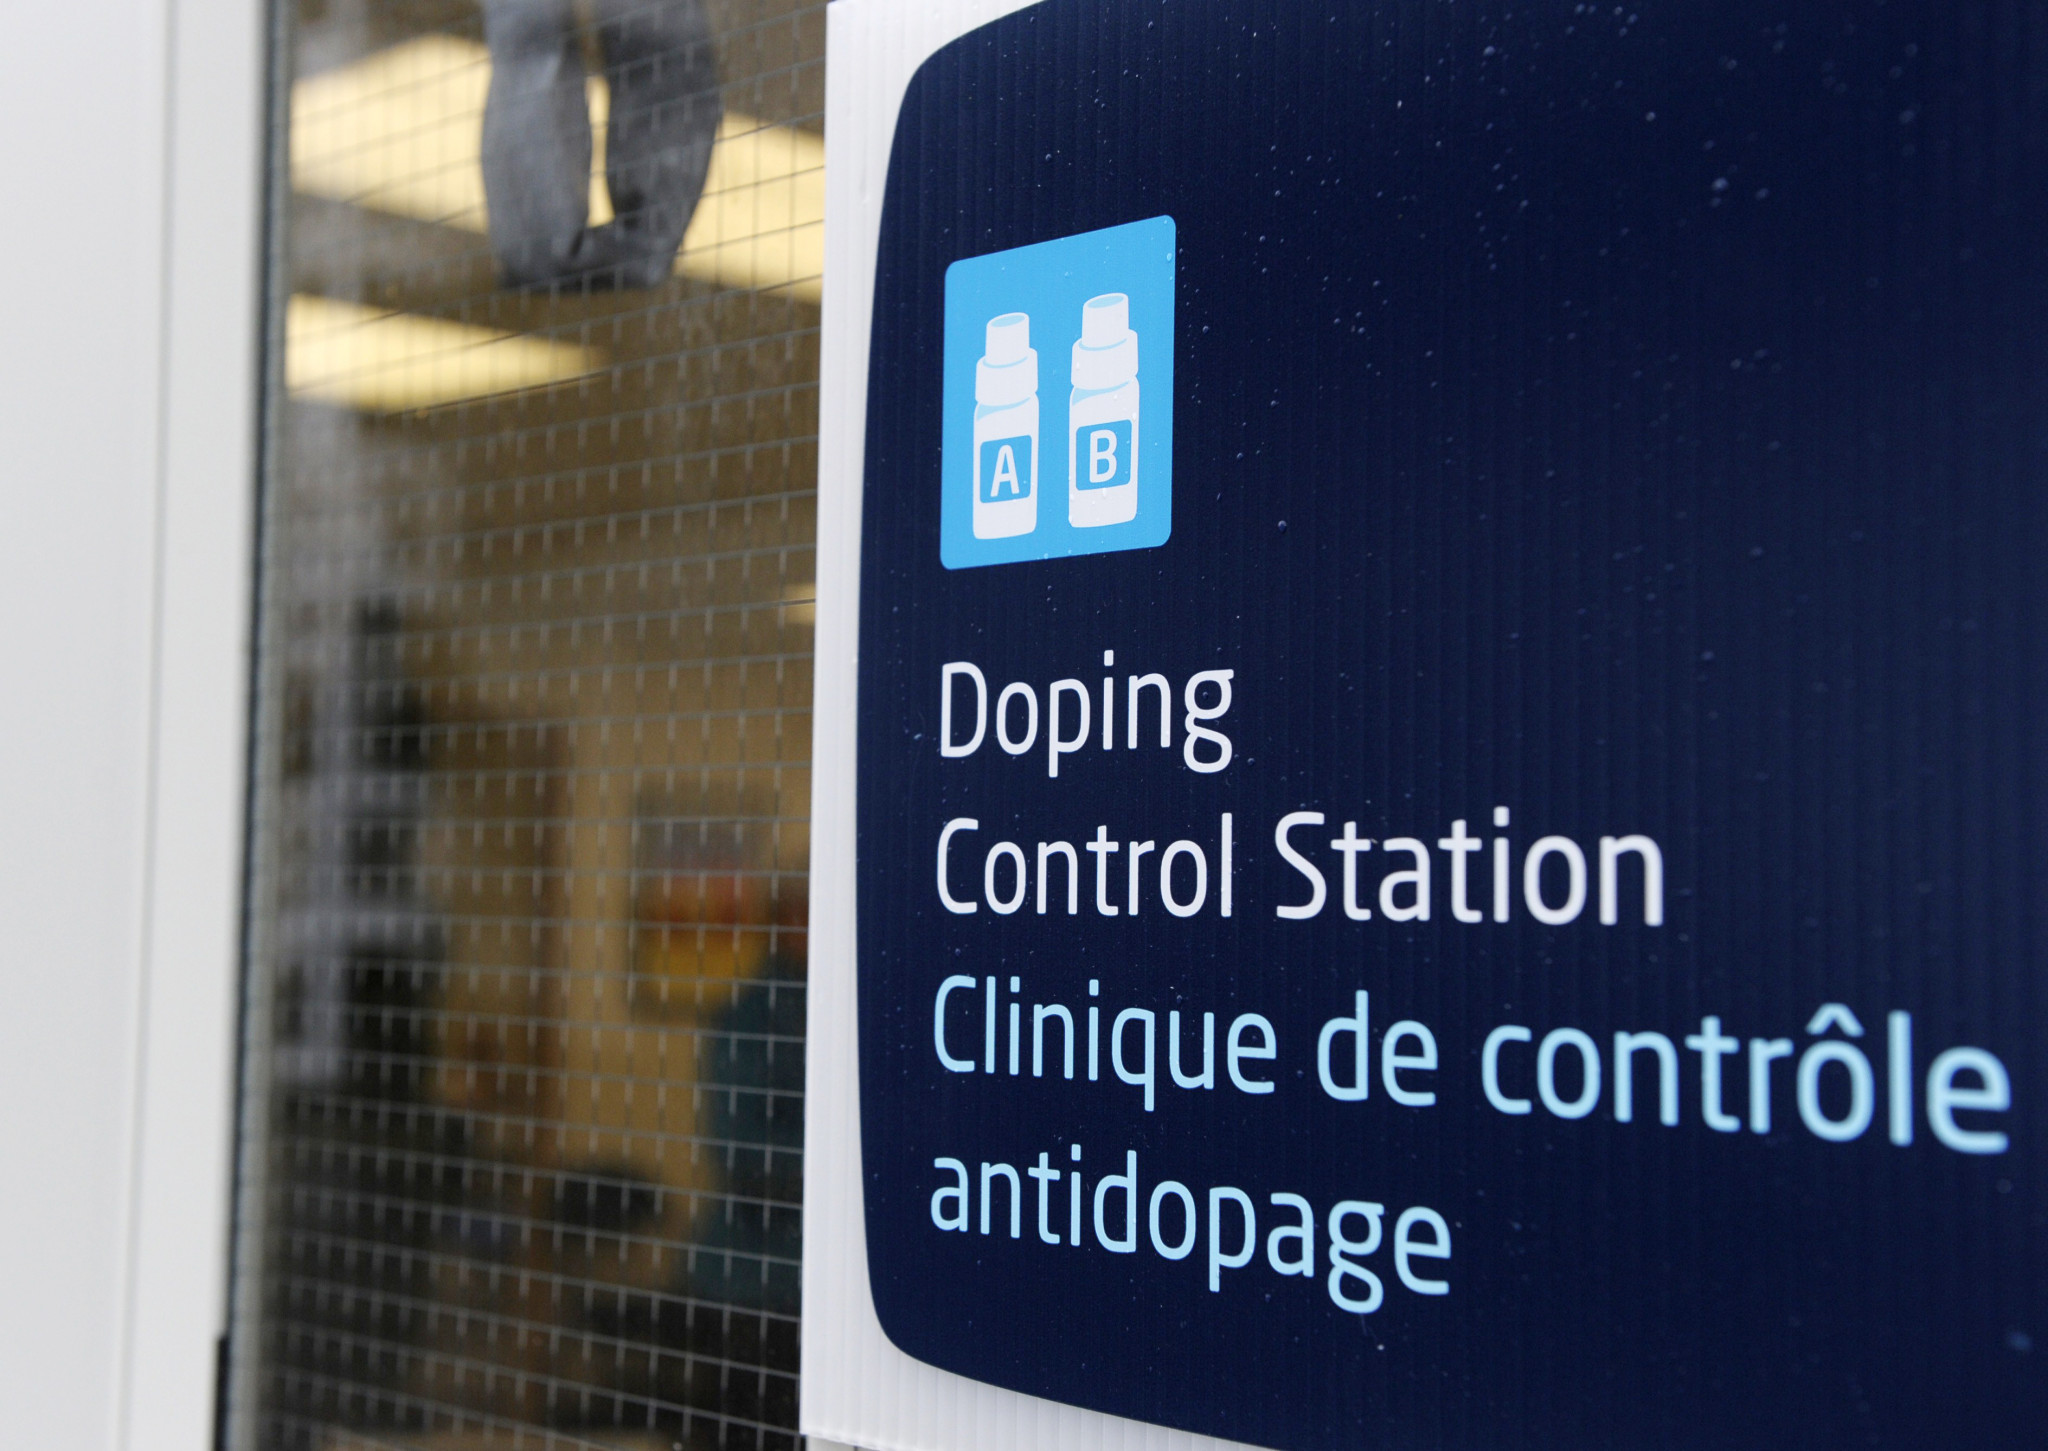 CCES is set to resume anti-doping tests with supplemental measures on July 13 ©Getty Images